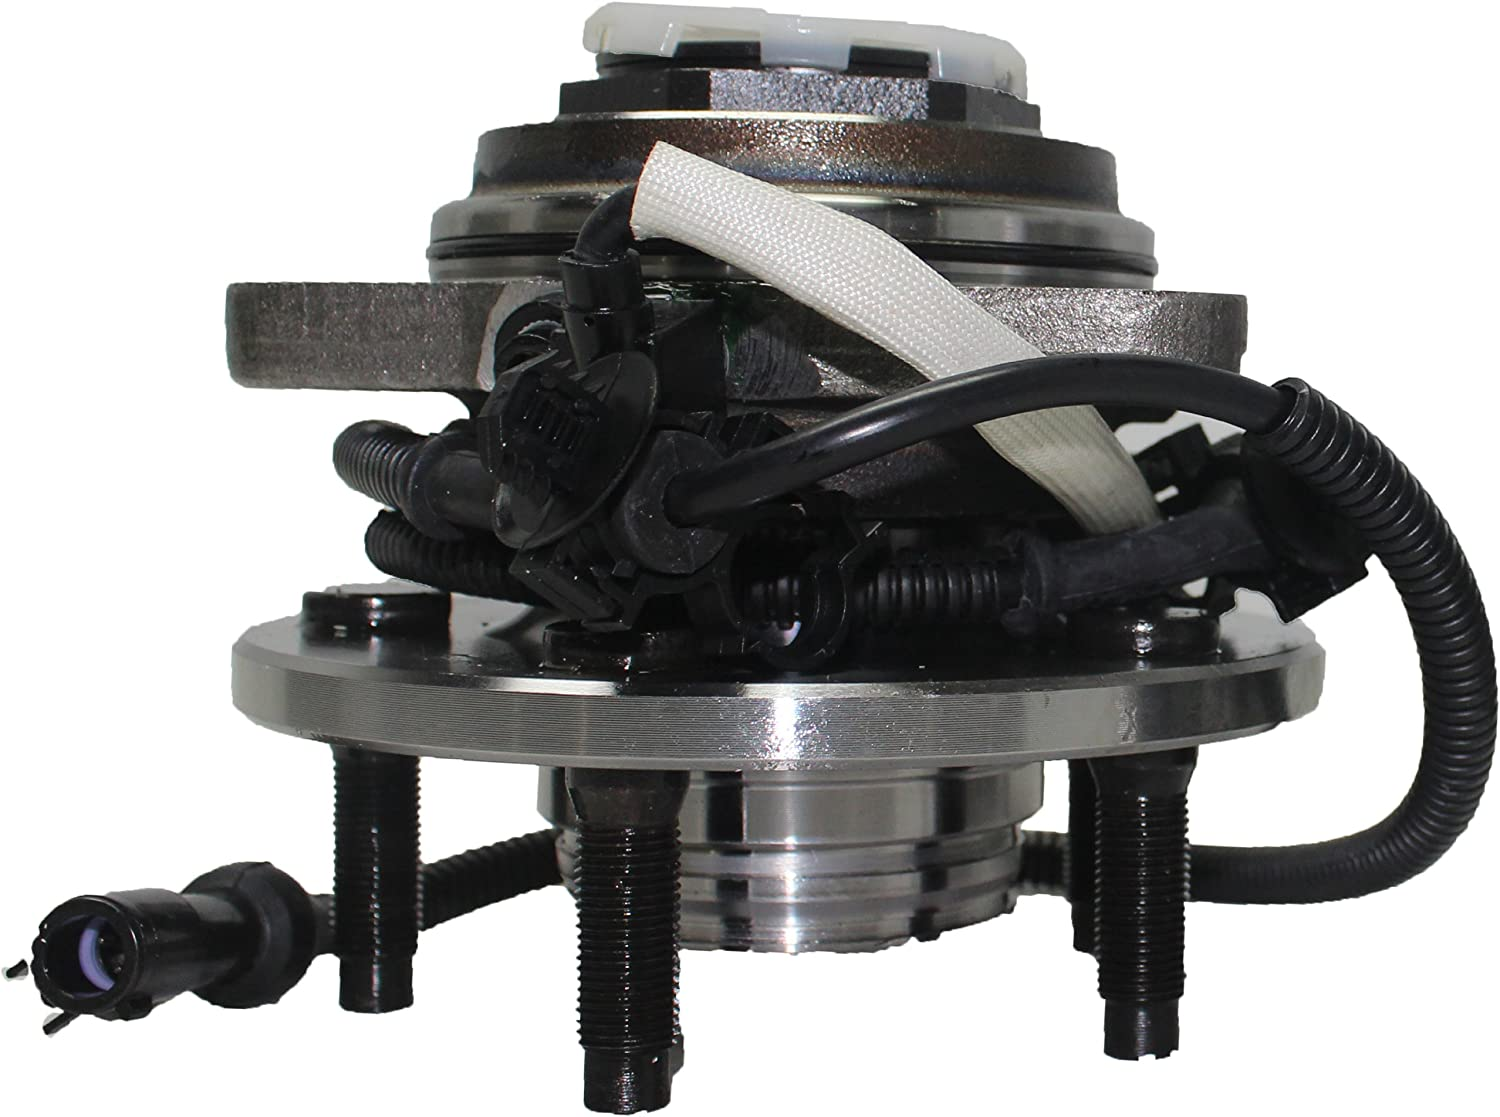 Brand New Front Wheel Hub and Bearing Assembly Mazda B4000 Ford Ranger 4x4 5 Lug Pulse Vacuum Lock Hub W/ABS [Auto Locking Hub]